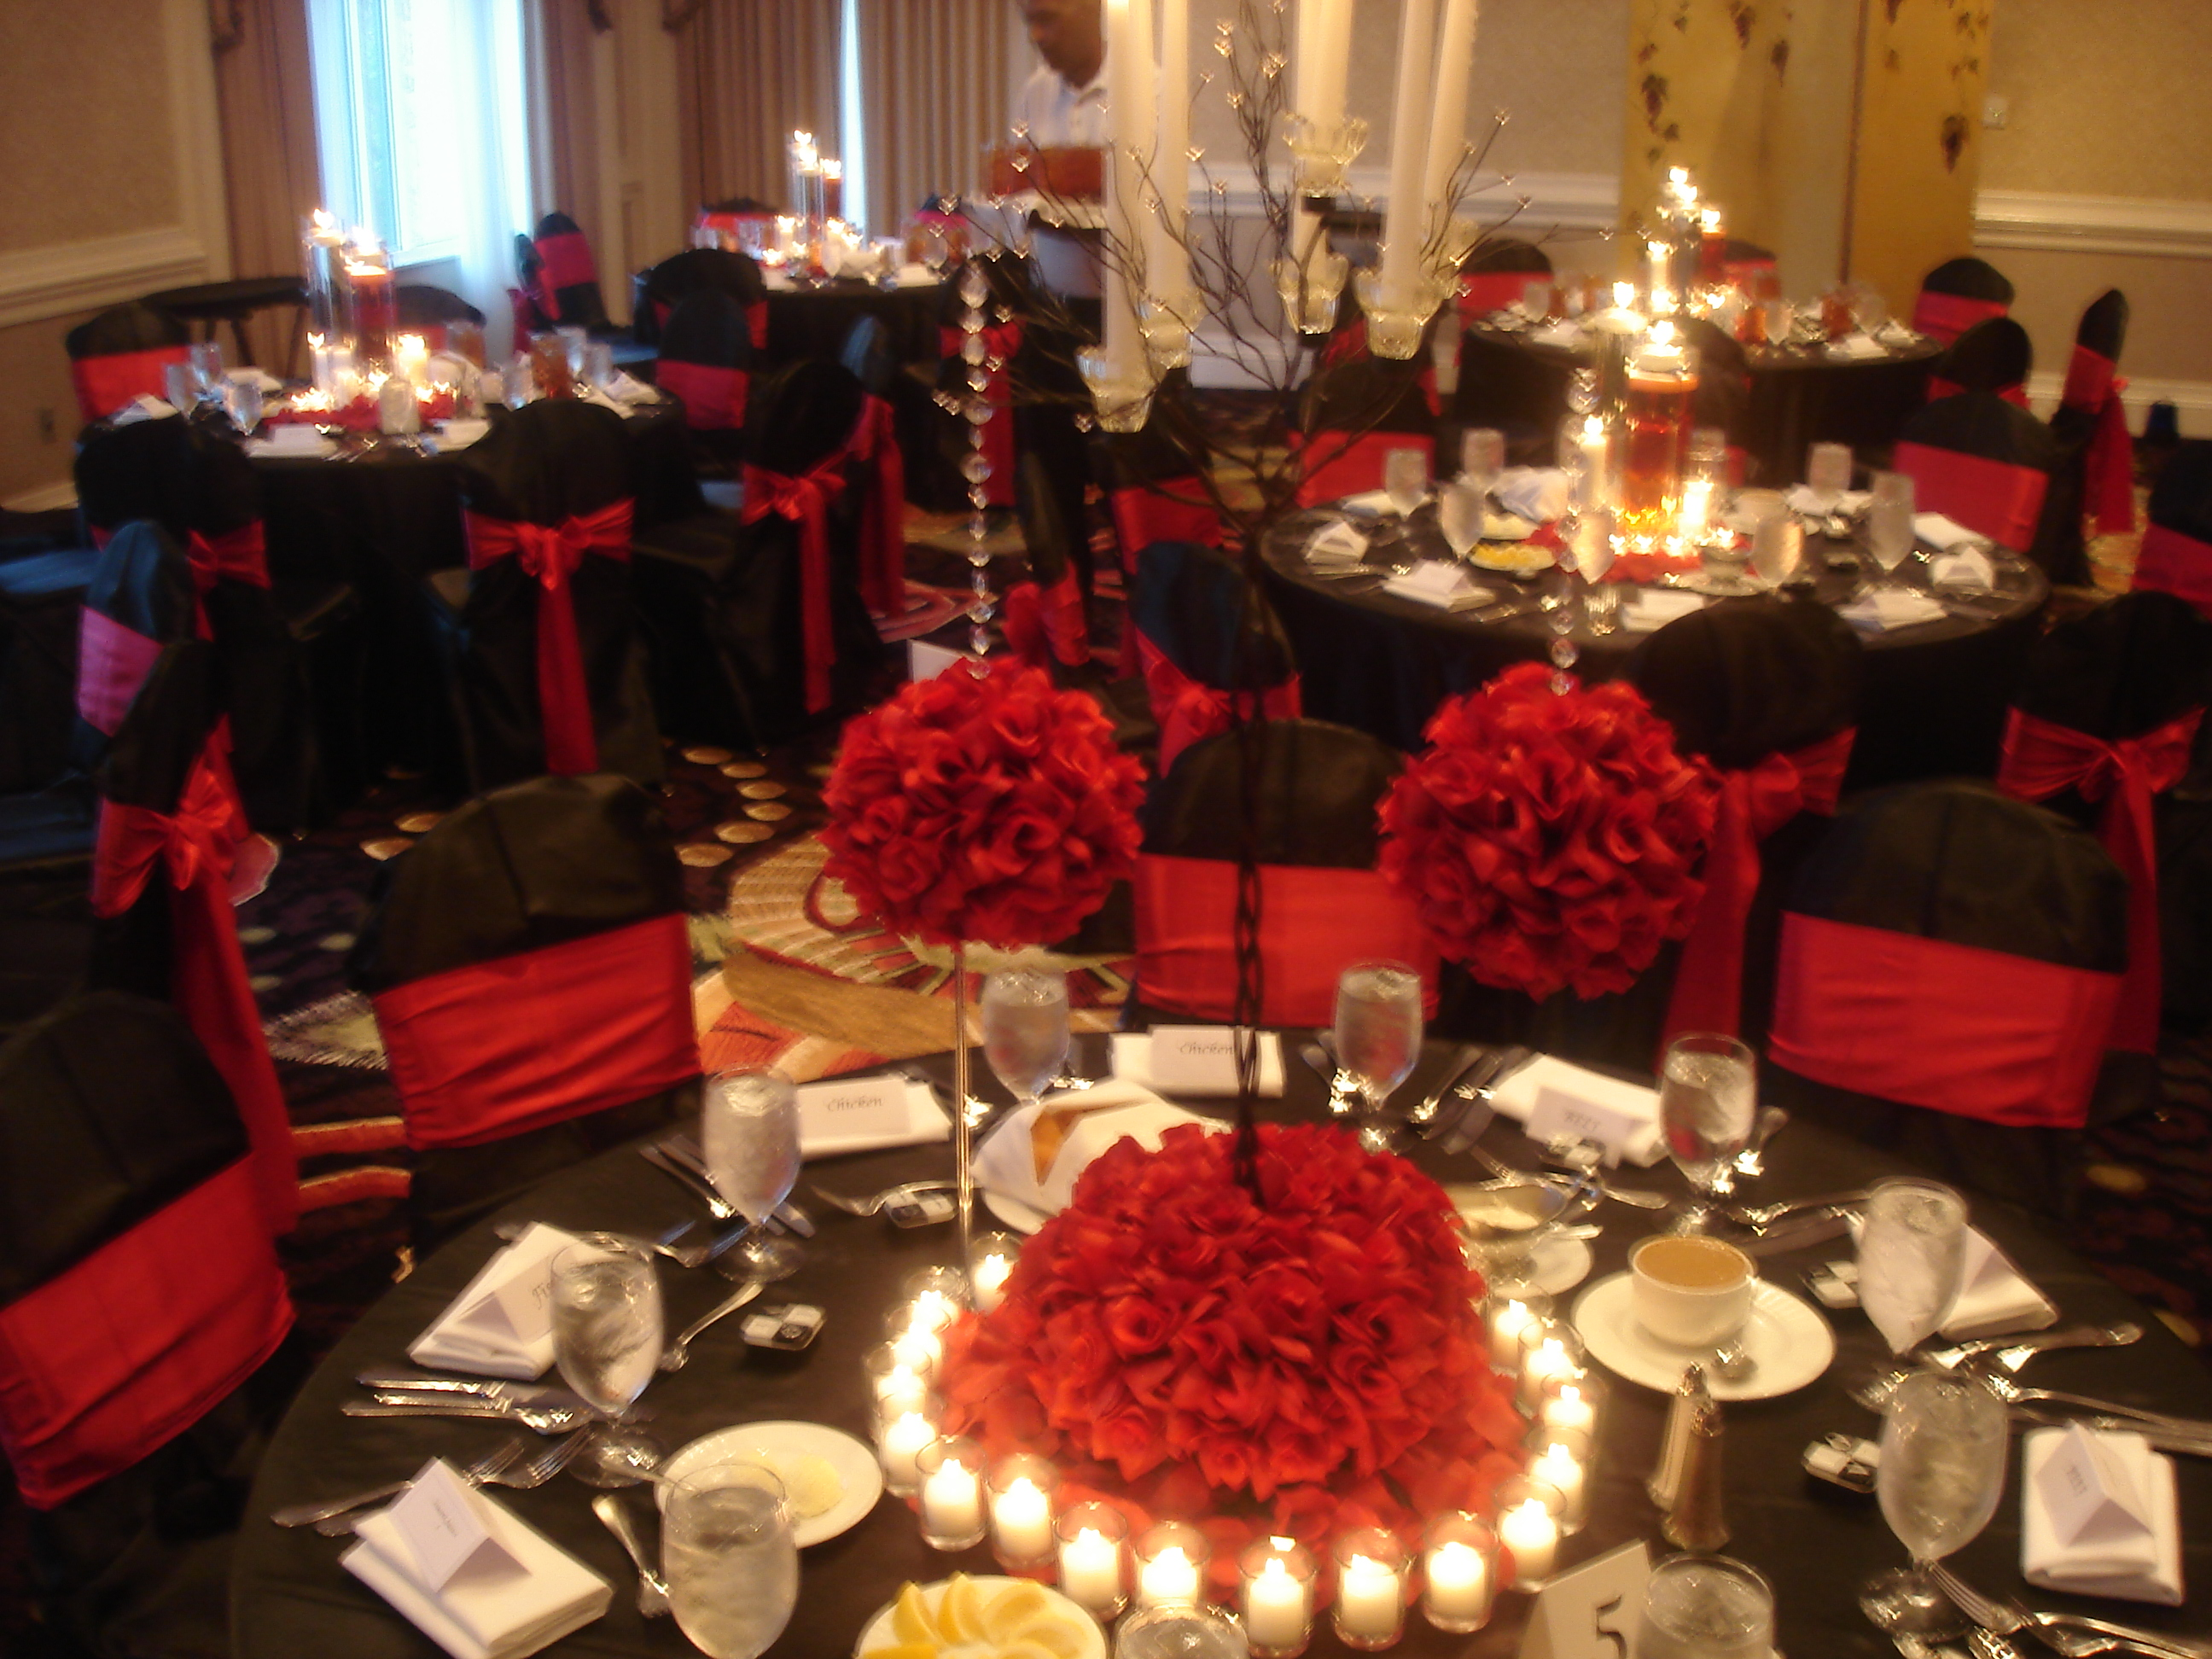 Lavish Fantasy Weddings and Events lavishfantasyevents